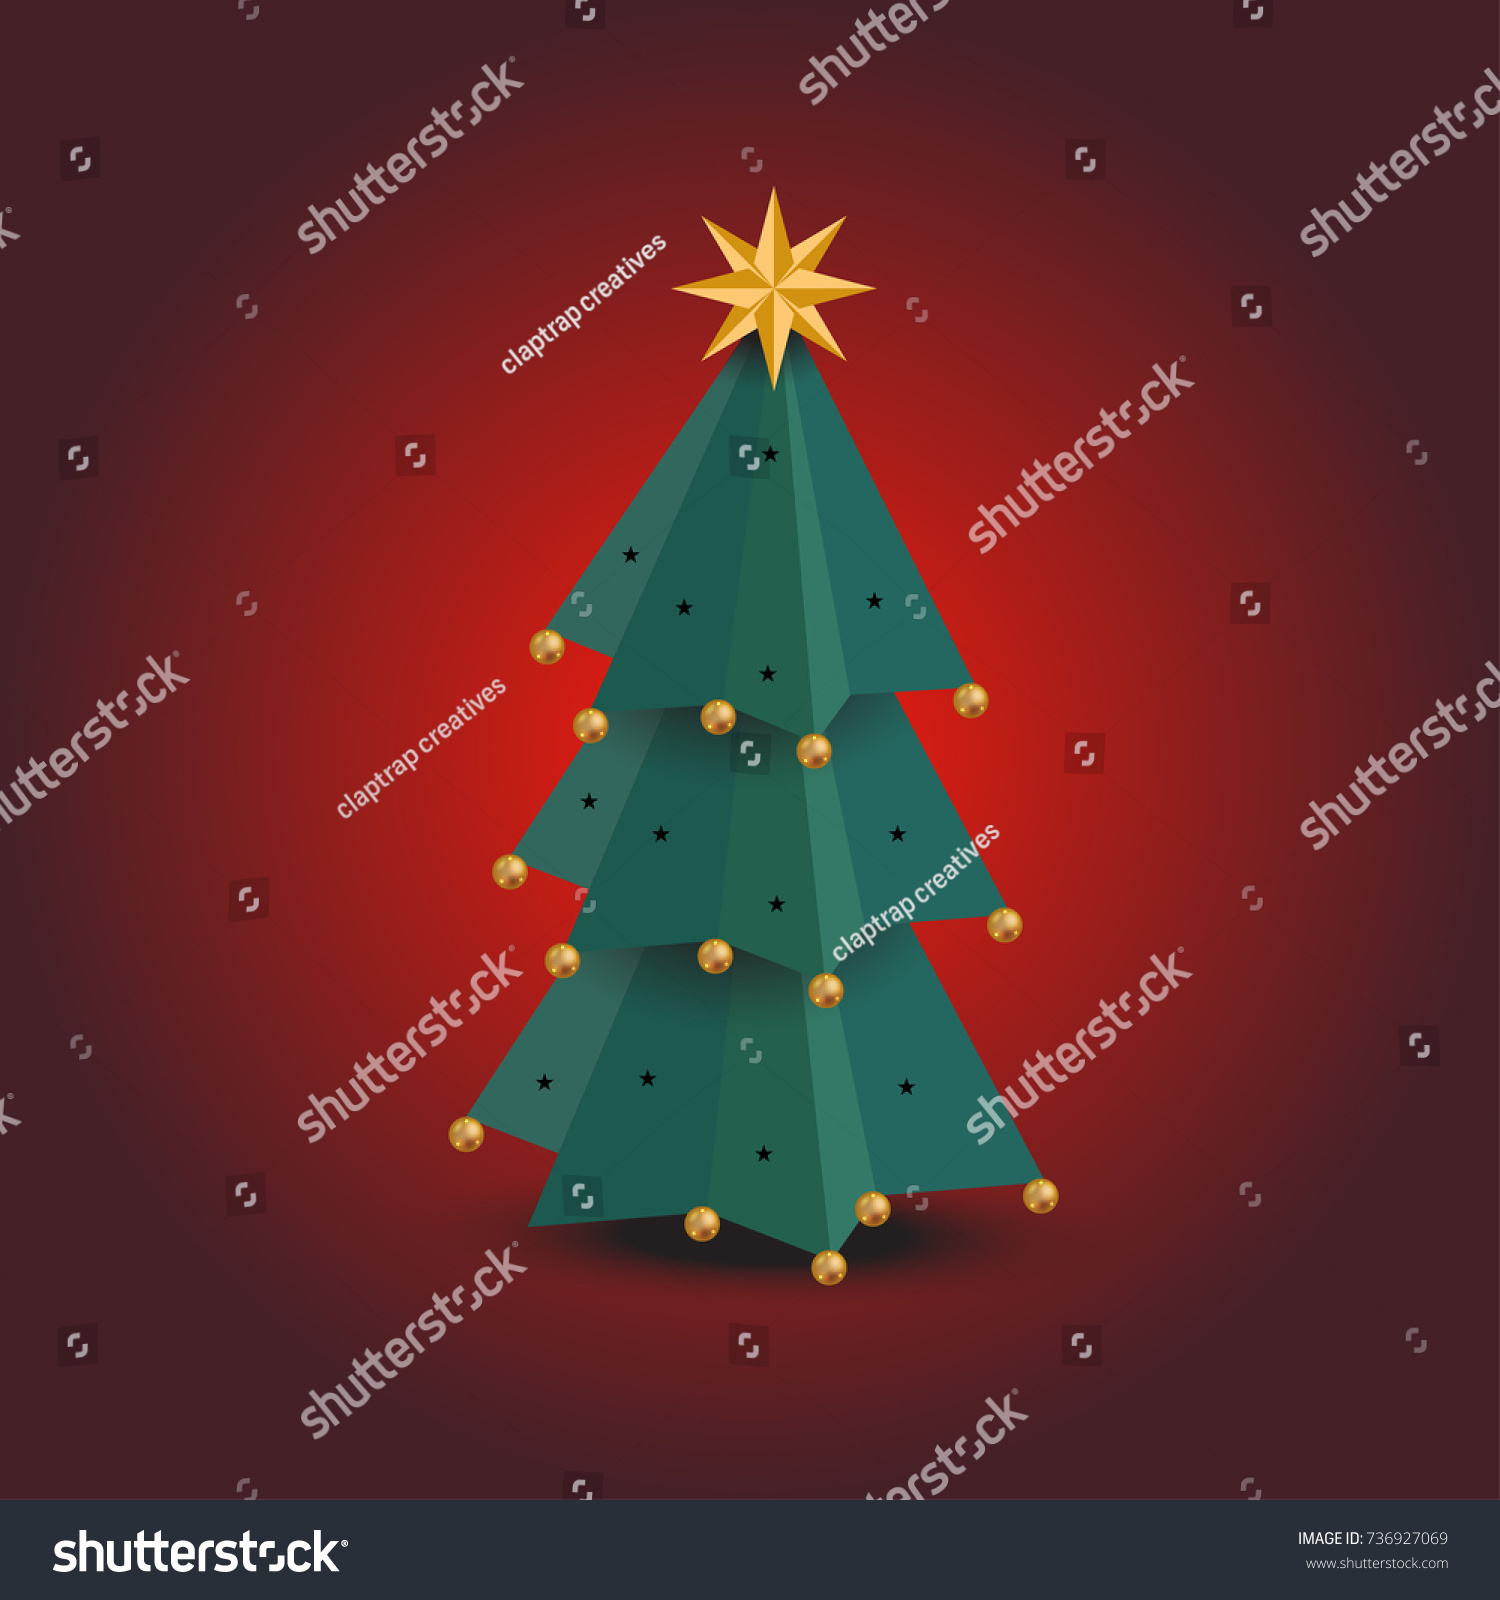 paper christmas tree on red background stock vector 736927069